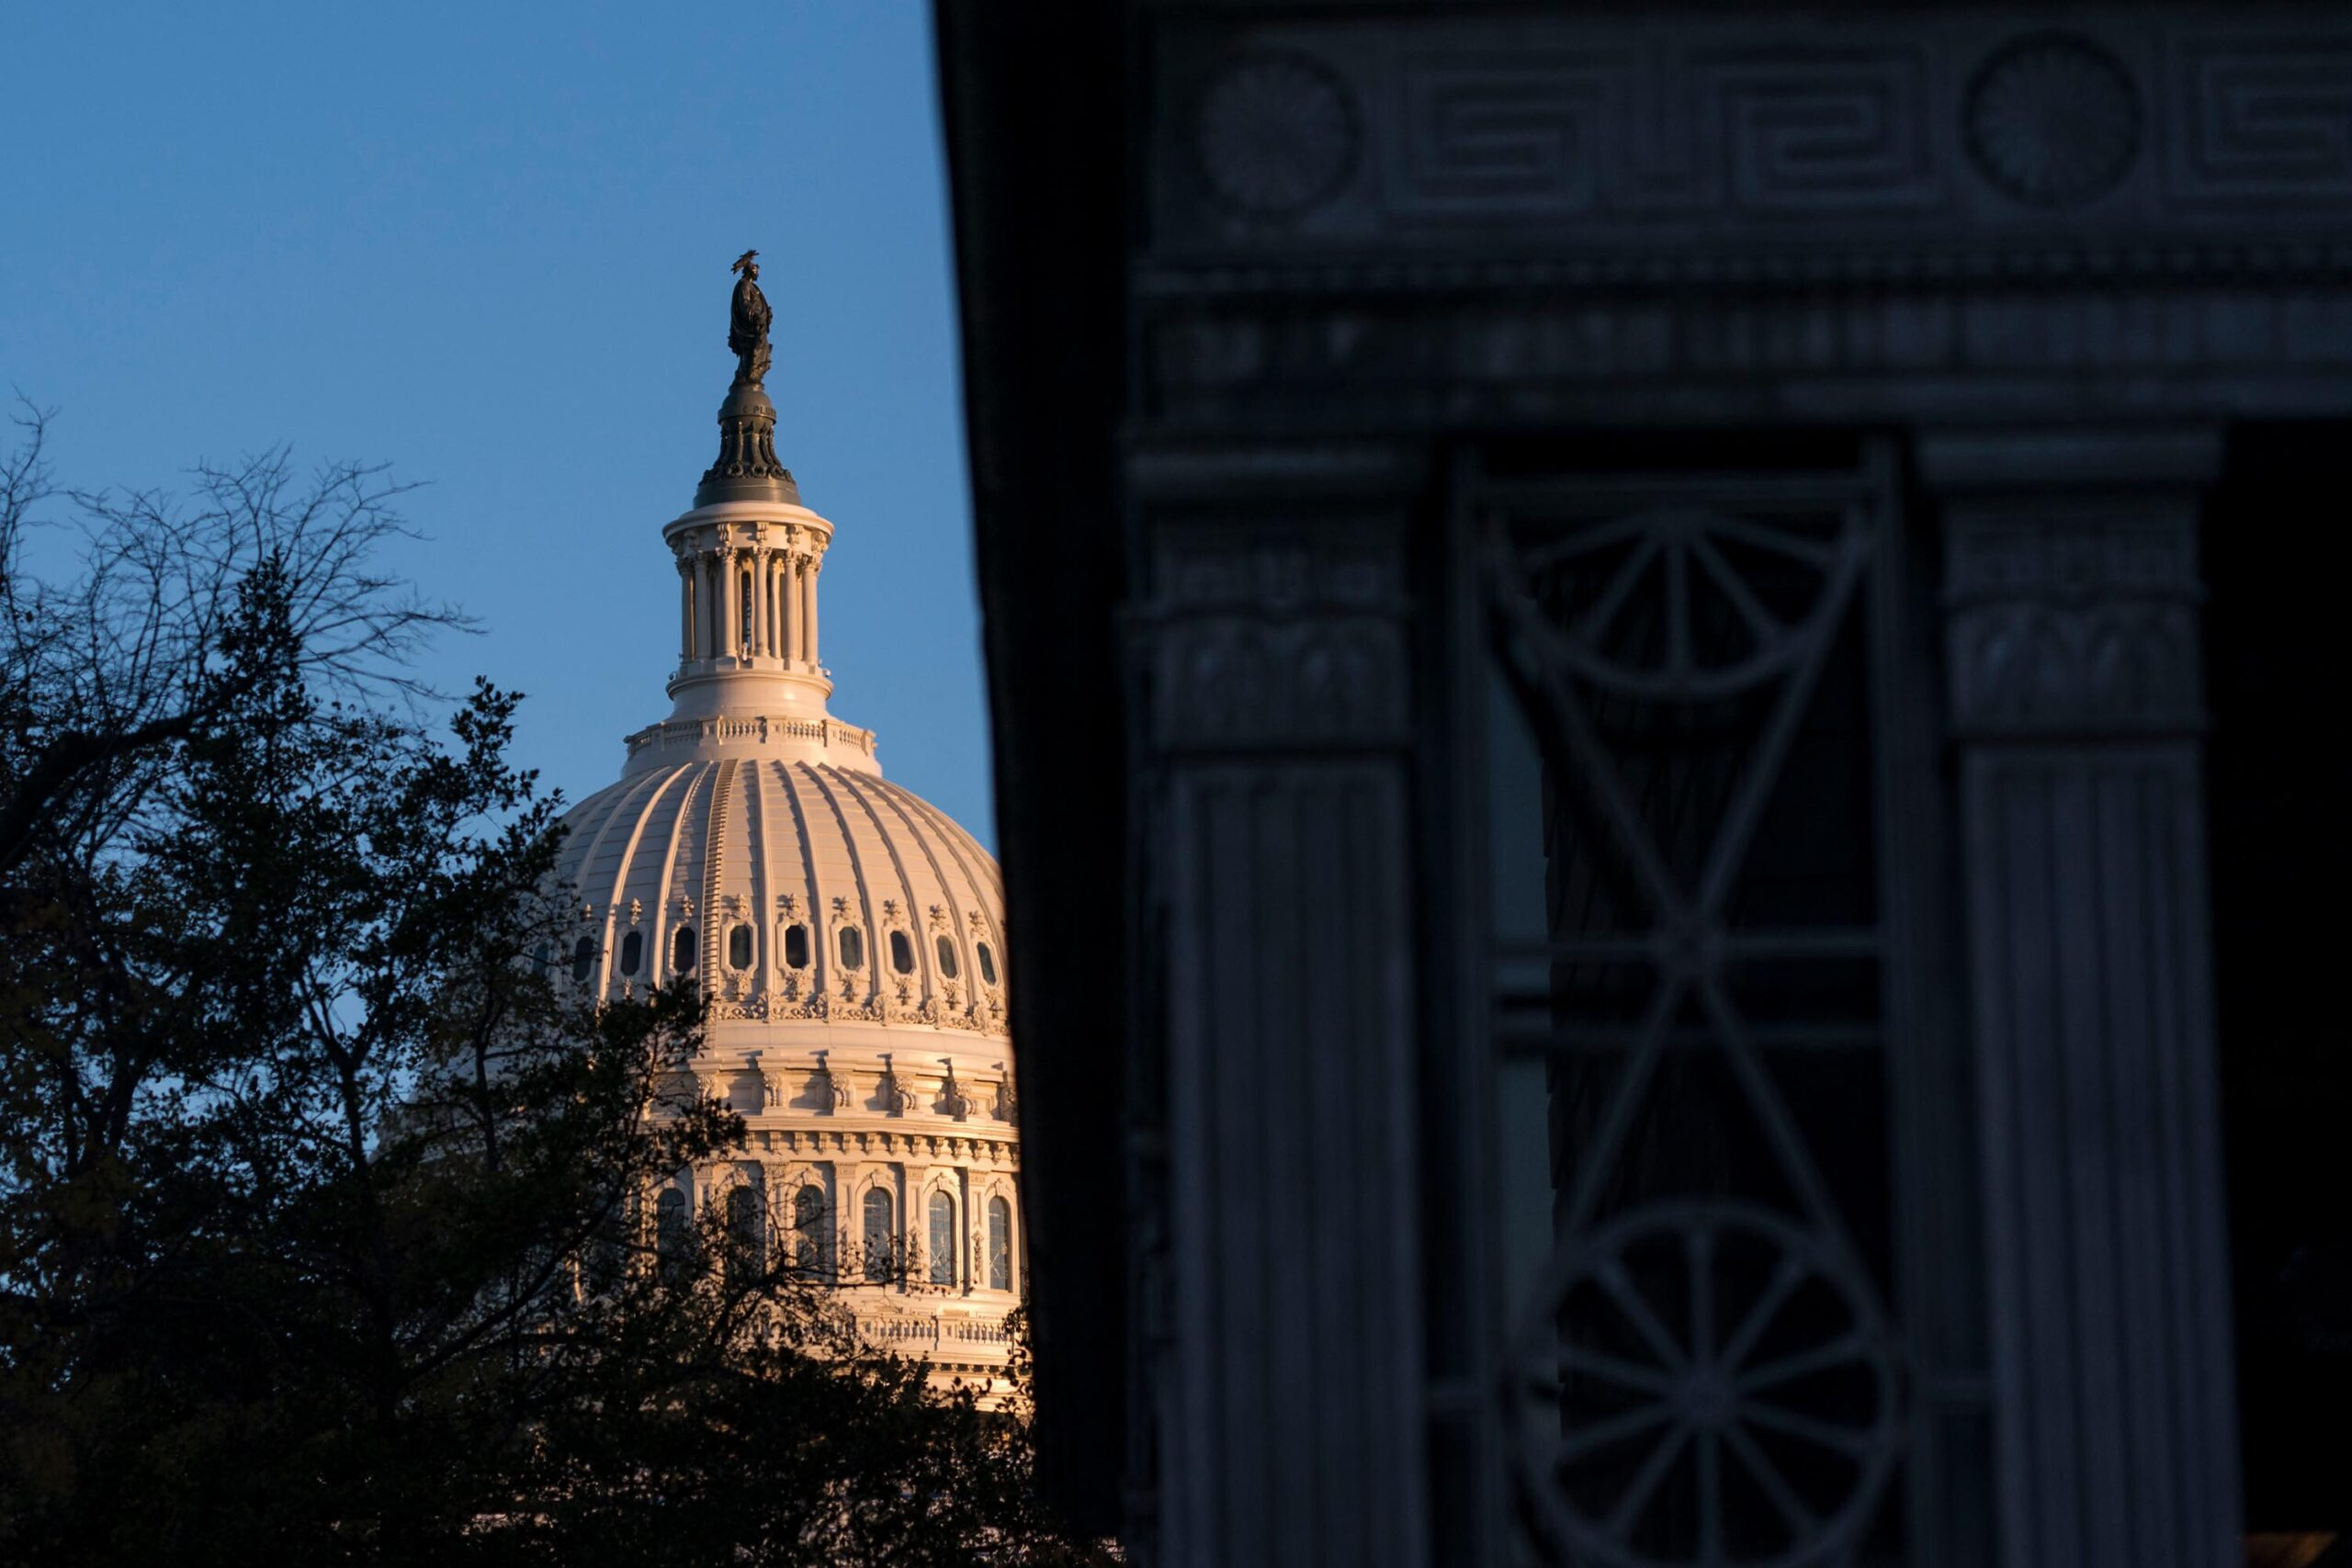 <i>Sarah Silbiger/Getty Images</i><br/>The Senate voted to approve a roughly $2 billion Capitol Hill security spending bill in response to the deadly January 6 insurrection.